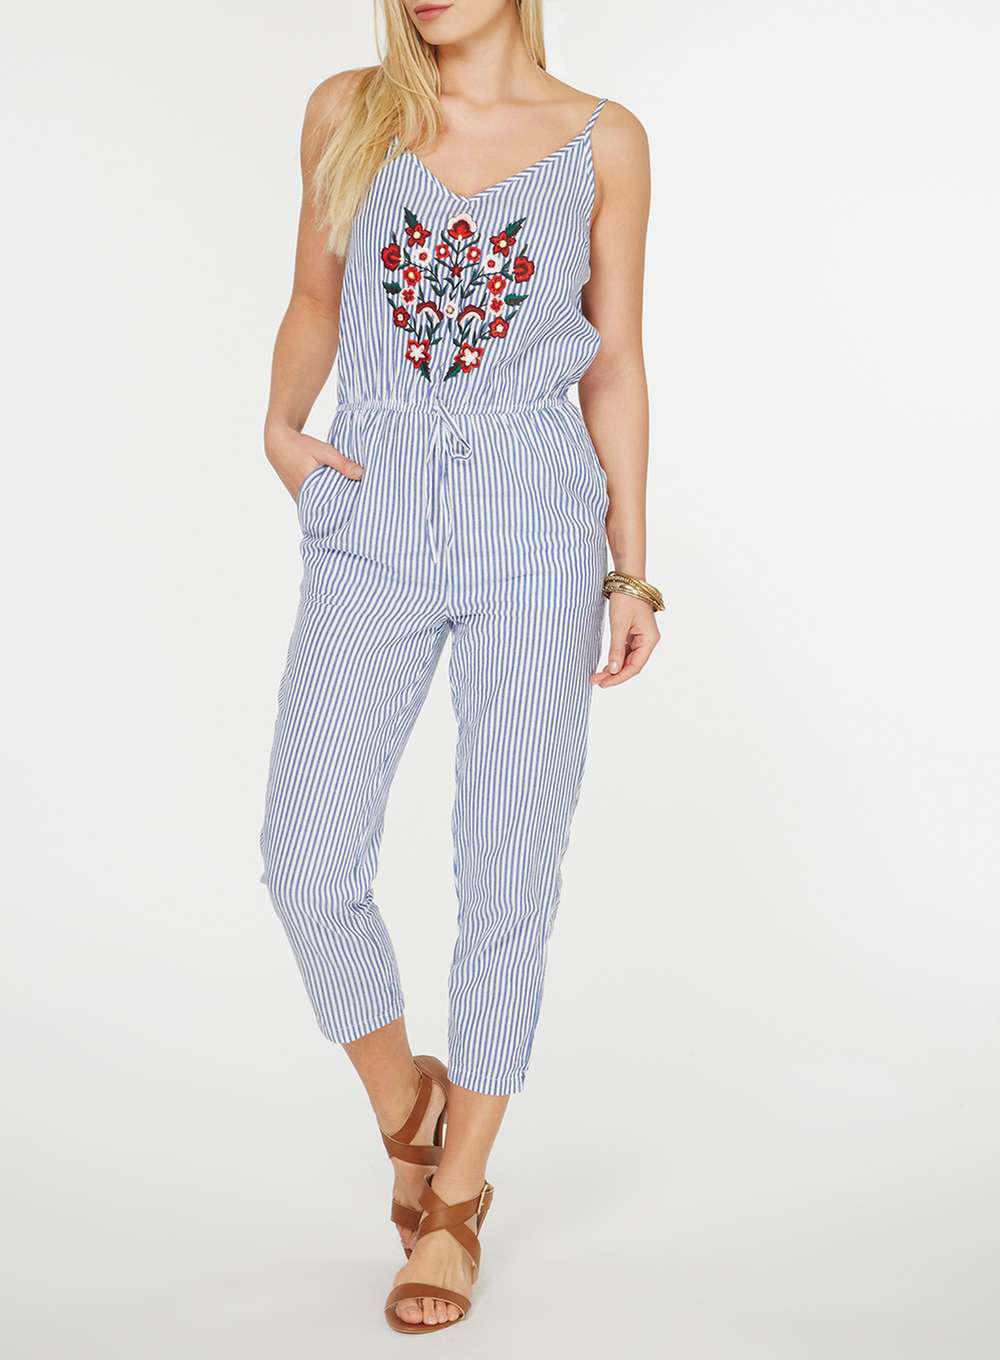 762f7cfa0c Lyst - Dorothy Perkins Blue And White Striped Floral Embroidery ...